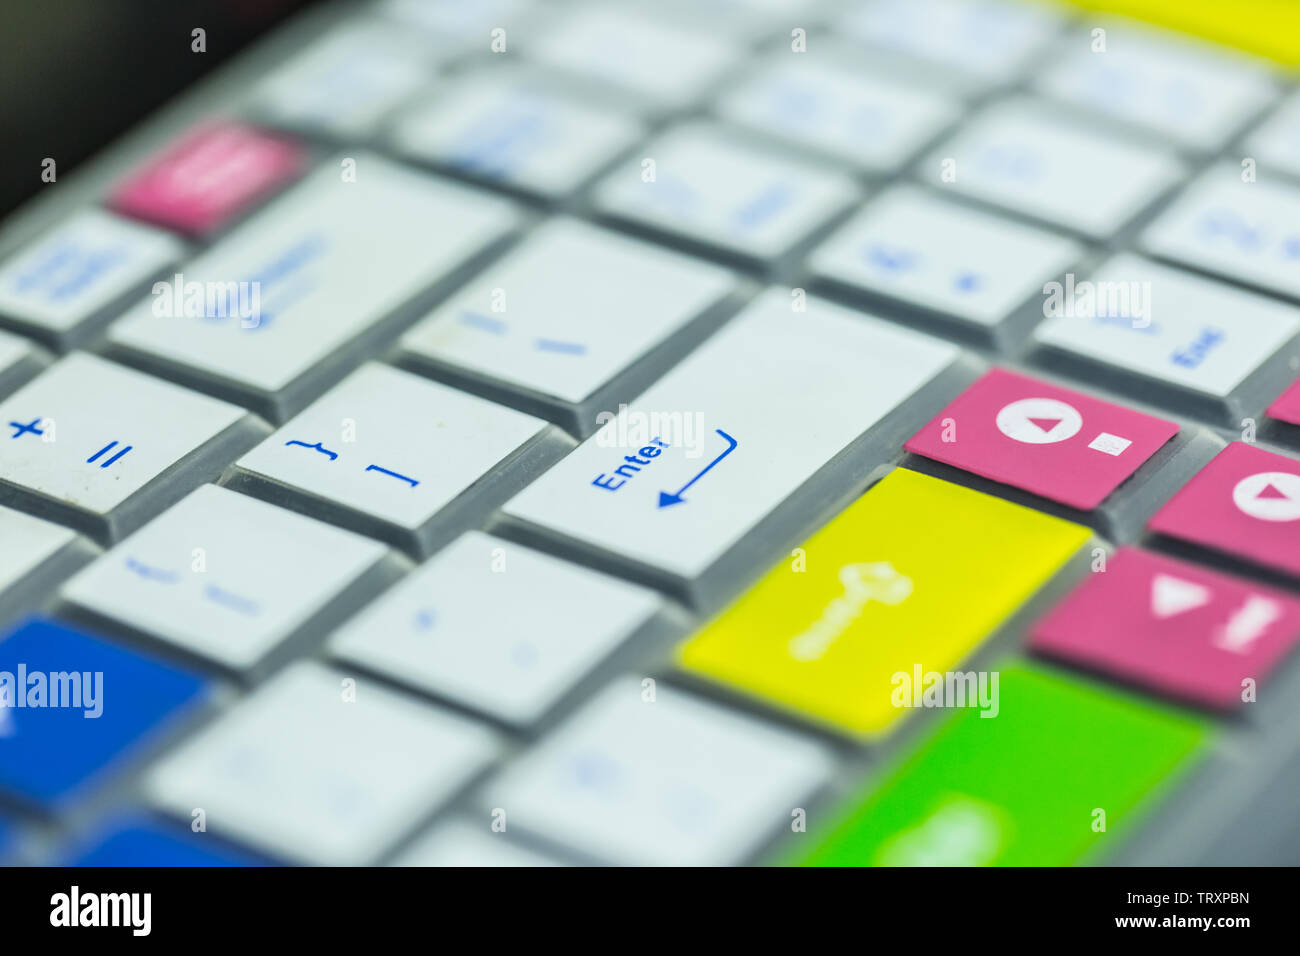 13ed5a35219 Perfect Keyboard Computer Key Button Stock Photos & Perfect Keyboard ...